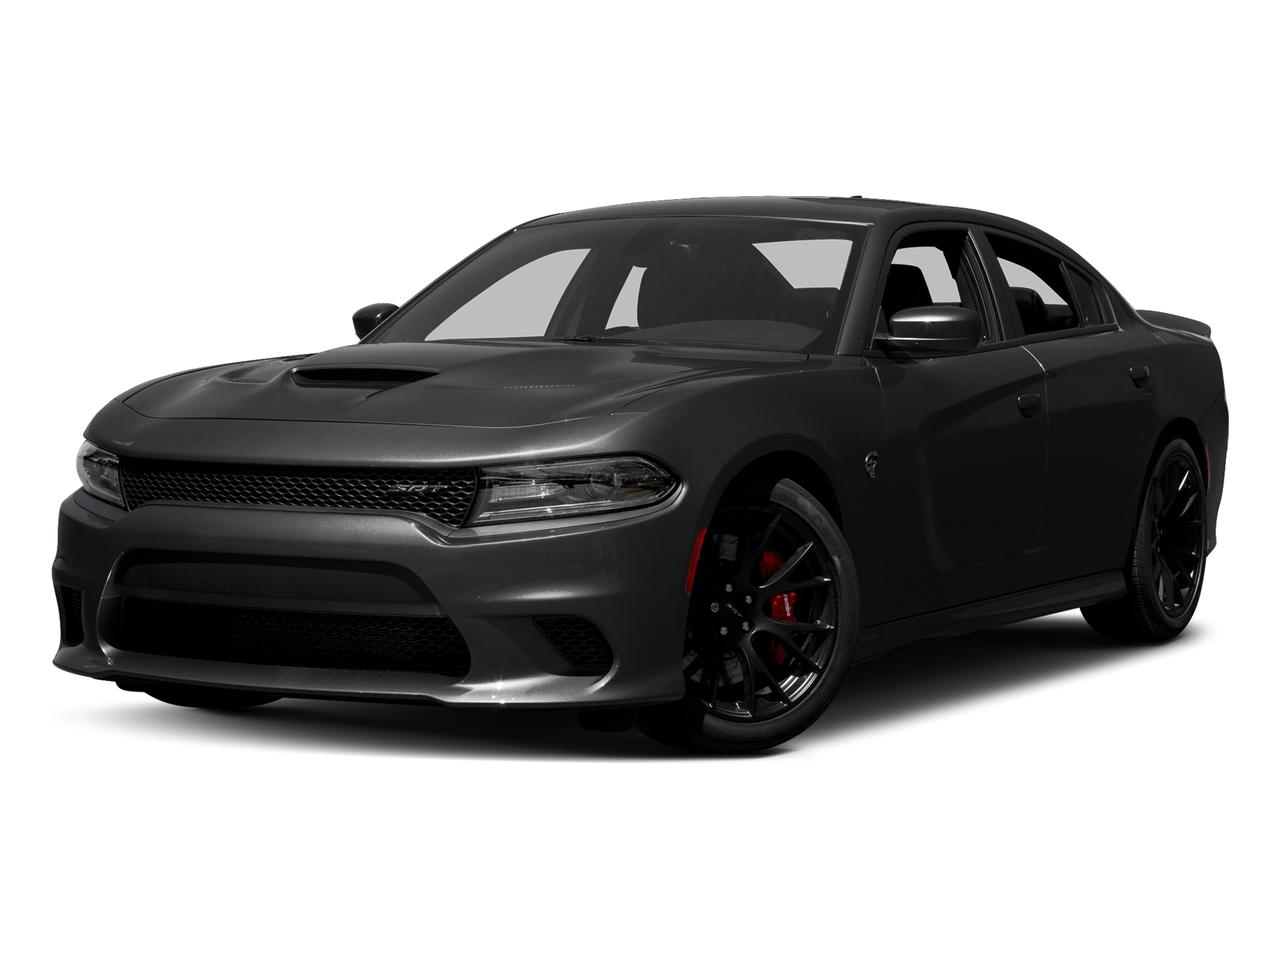 2016 Dodge Charger Vehicle Photo in Manassas, VA 20109